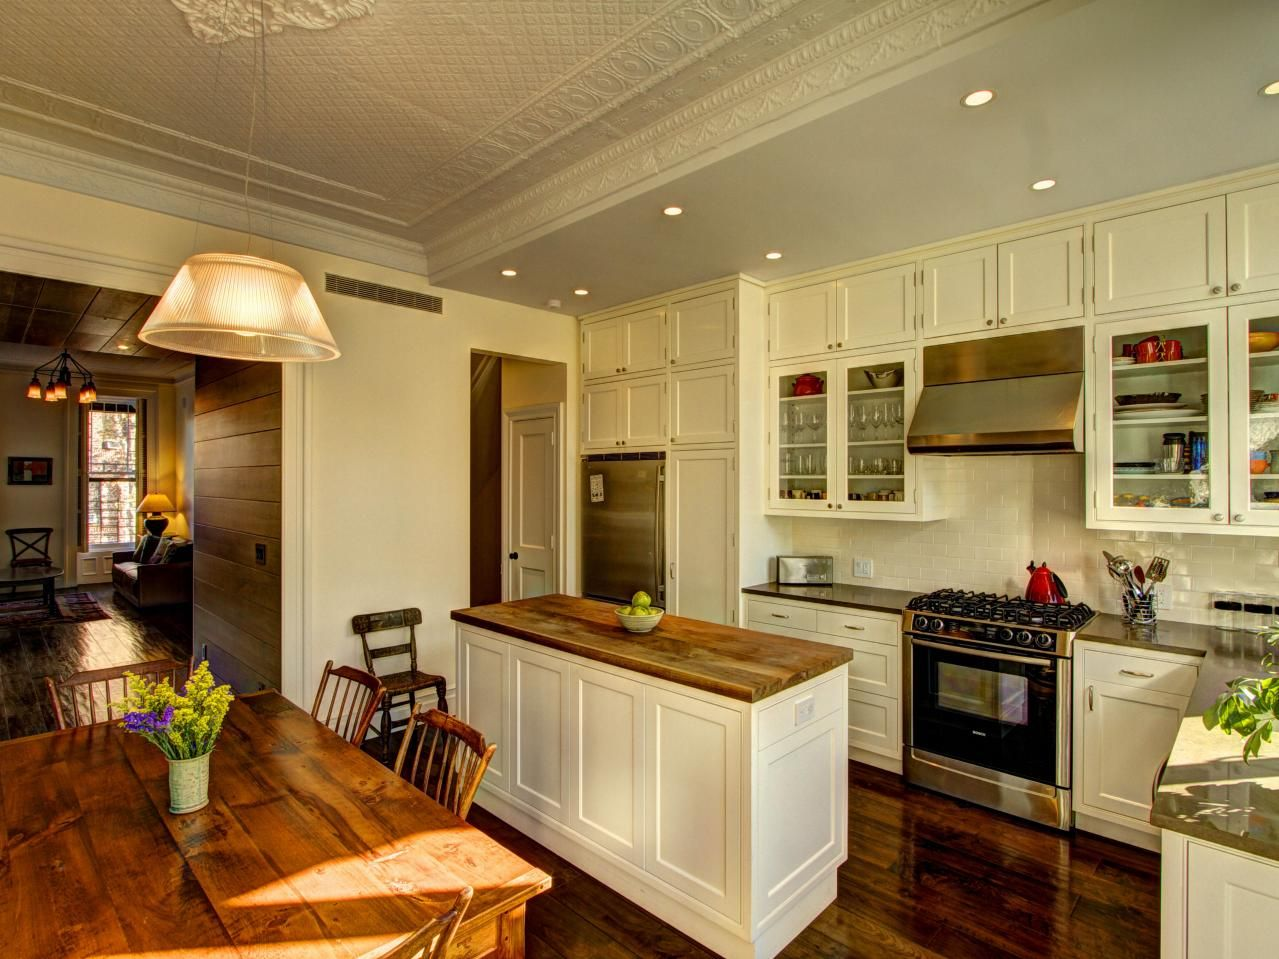 Pictures of kitchen cabinets ideas inspiration from for Hgtv galley kitchen ideas